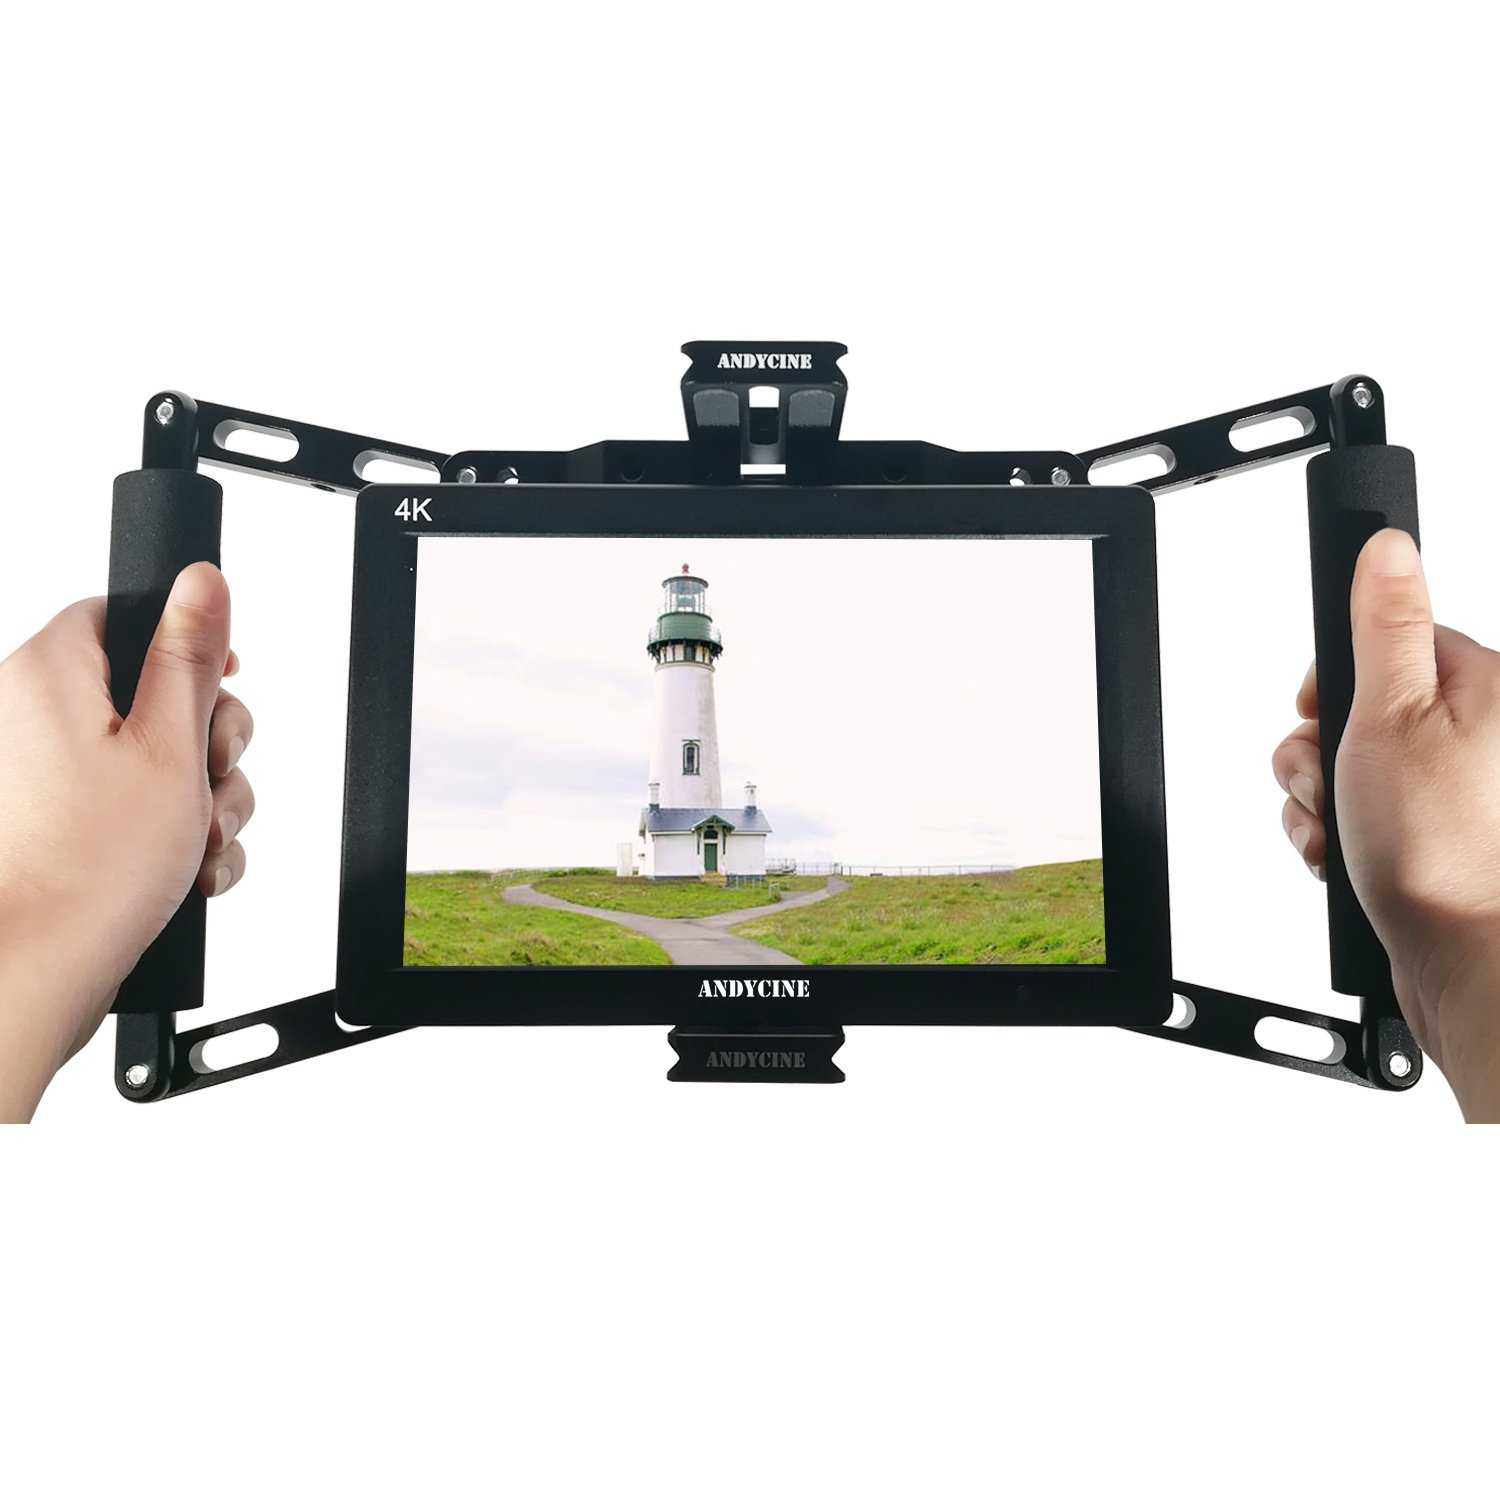 ANDYCINE Monitor Cage Director Monitor Cage for 4 inch/5 inch/7 inch Camera-Top Field Monitor Such as Feelworld F450/F760/F759/F737/F7/F7S/T7/ANDYCINE A6 Monitors